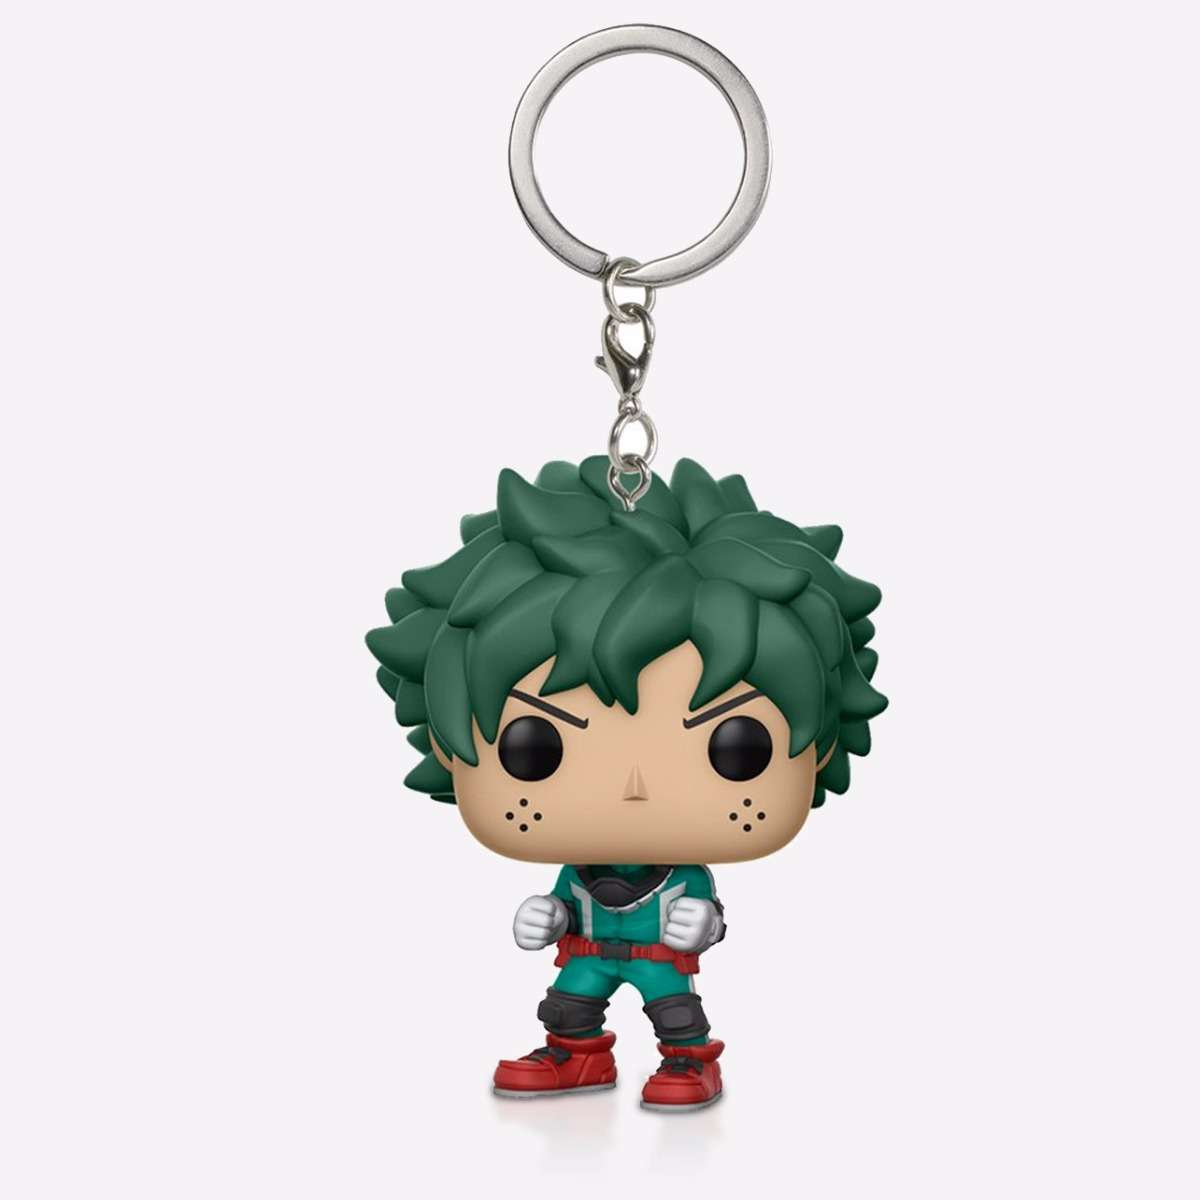 Funko Pocket Pop Keychain - Deku Accessories